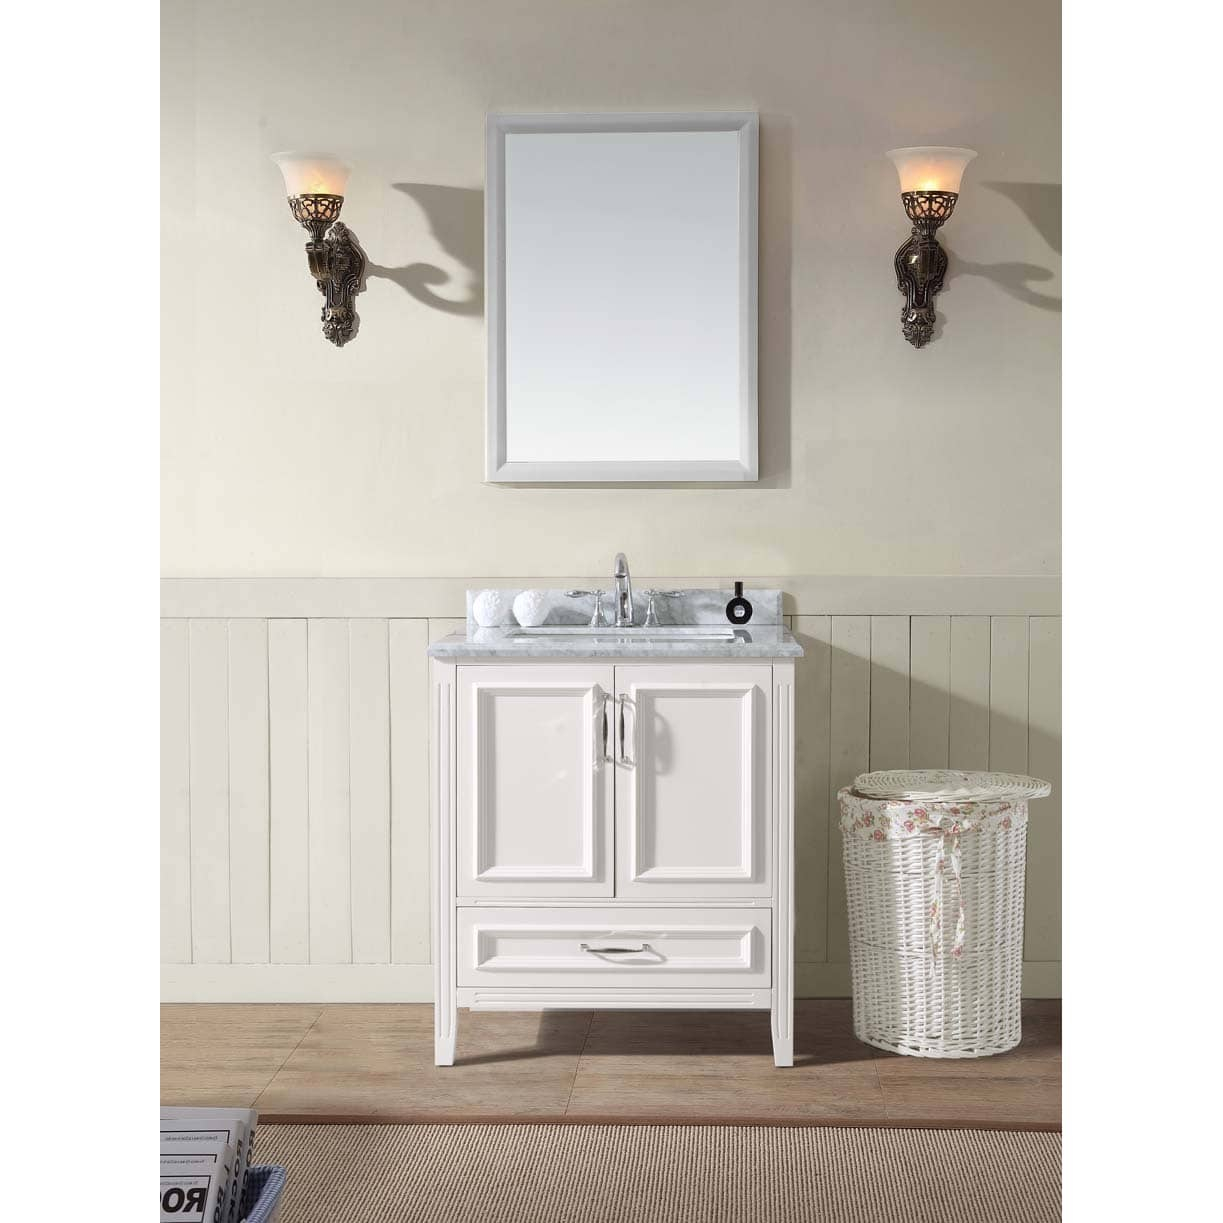 "Fabulous Shop Jude 30"" Single Bathroom Vanity Set - White - Free Shipping pertaining to Awesome Bathroom Vanity Table"